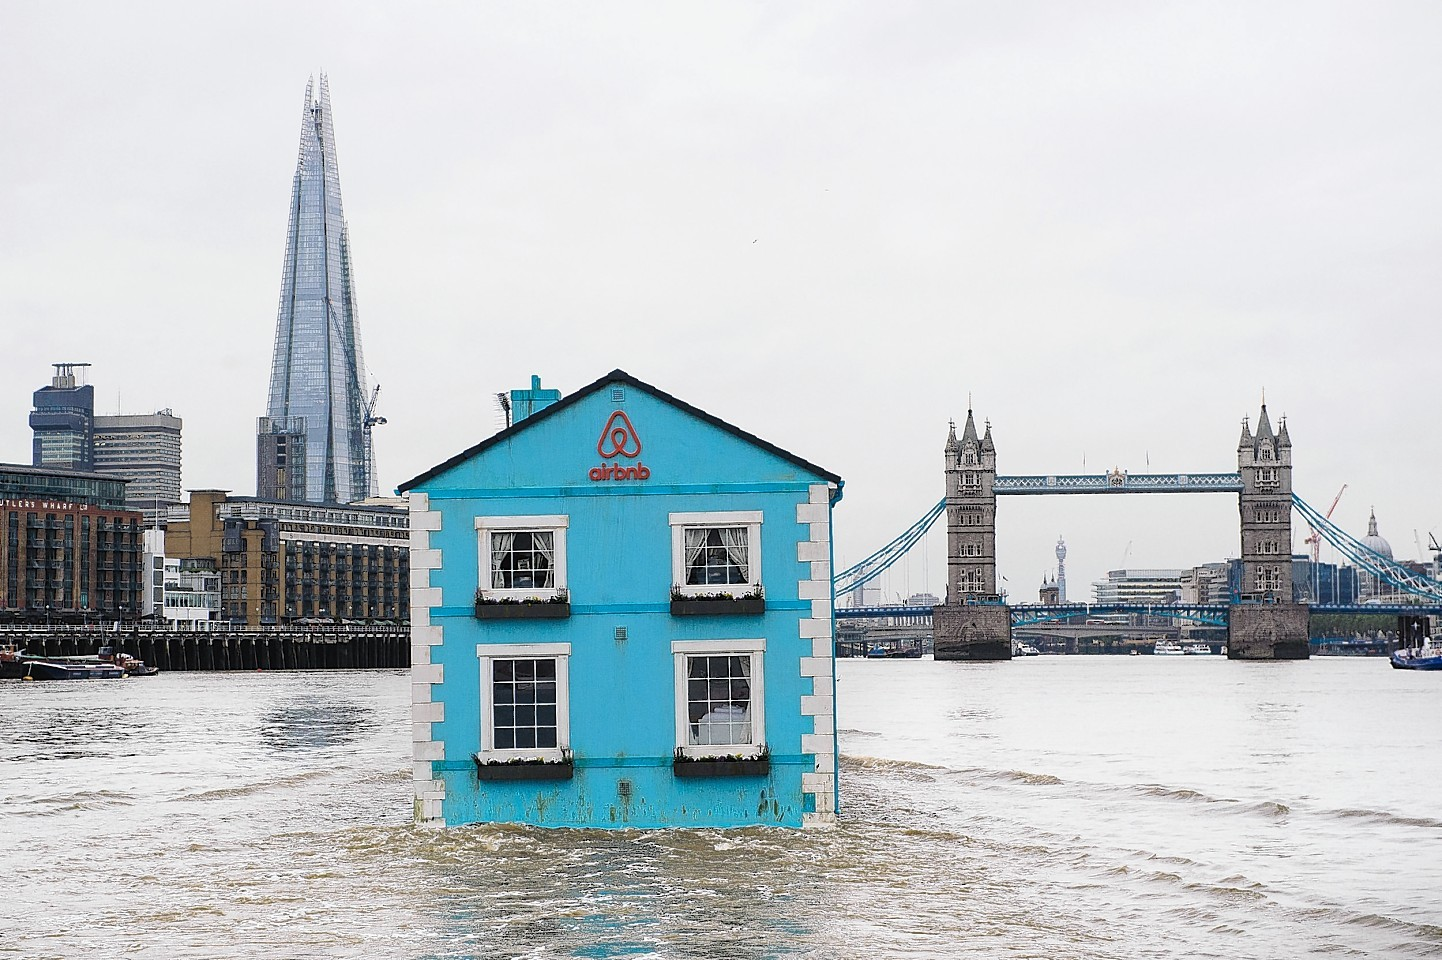 Airbnb house floats down the Thames